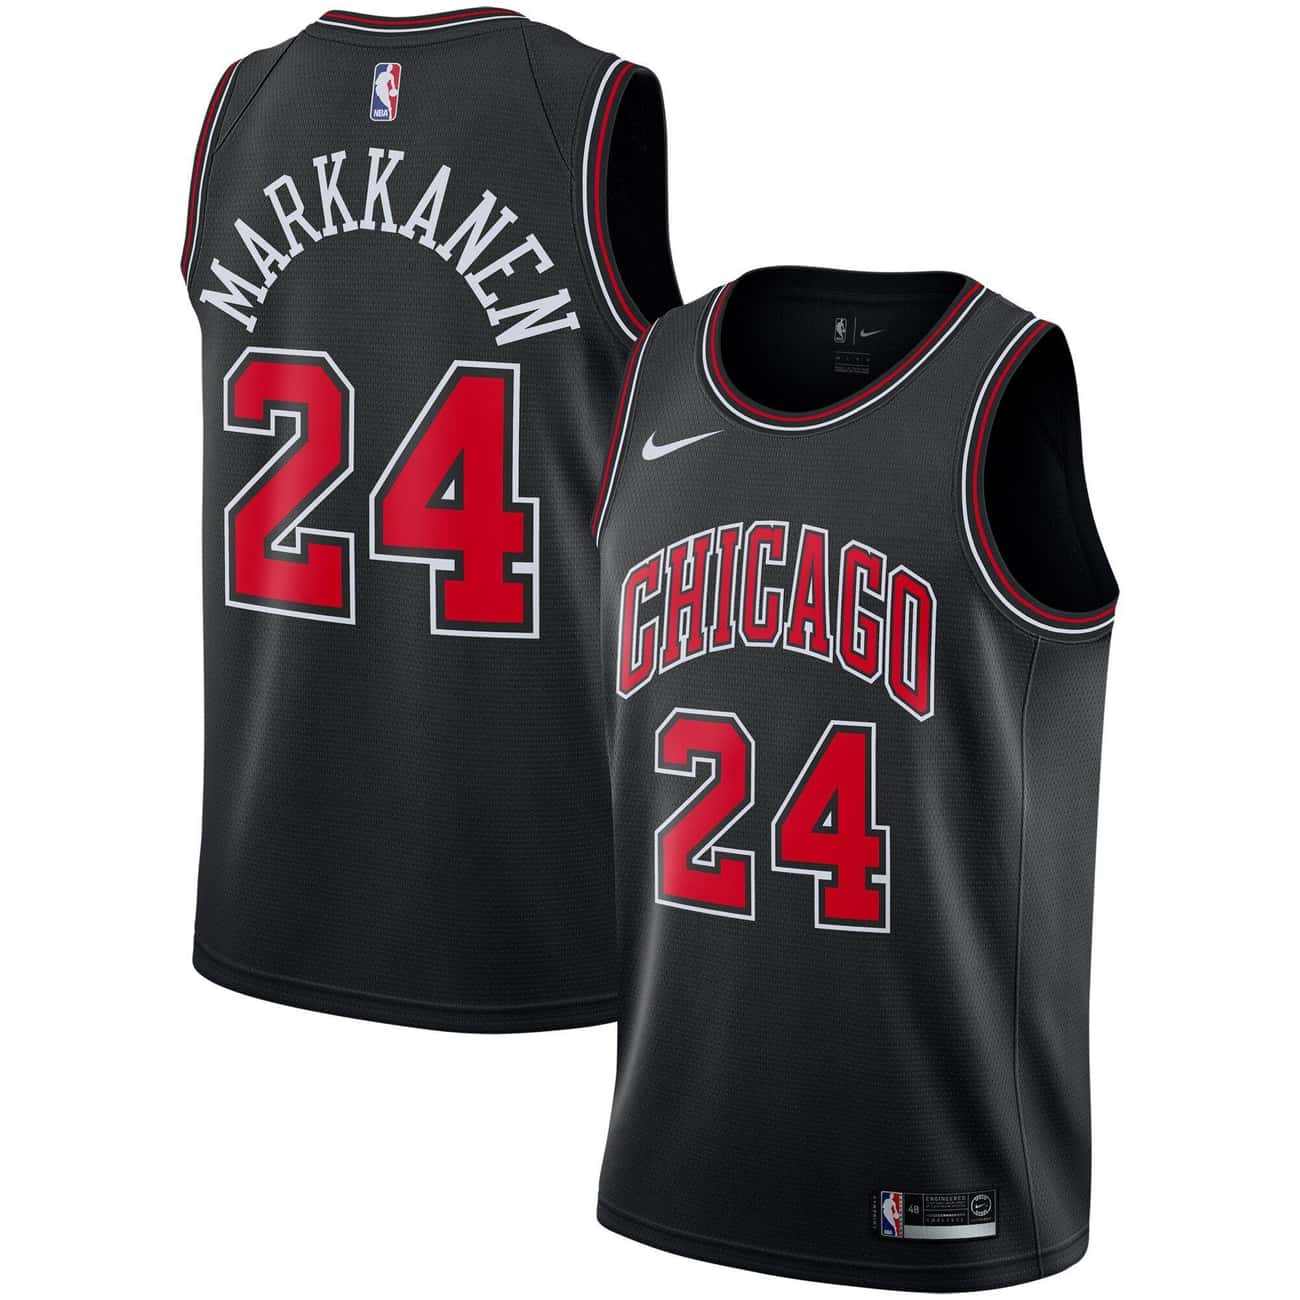 """Chicago Bulls is listed (or ranked) 3 on the list The Coolest NBA """"Statement Edition"""" Jerseys"""